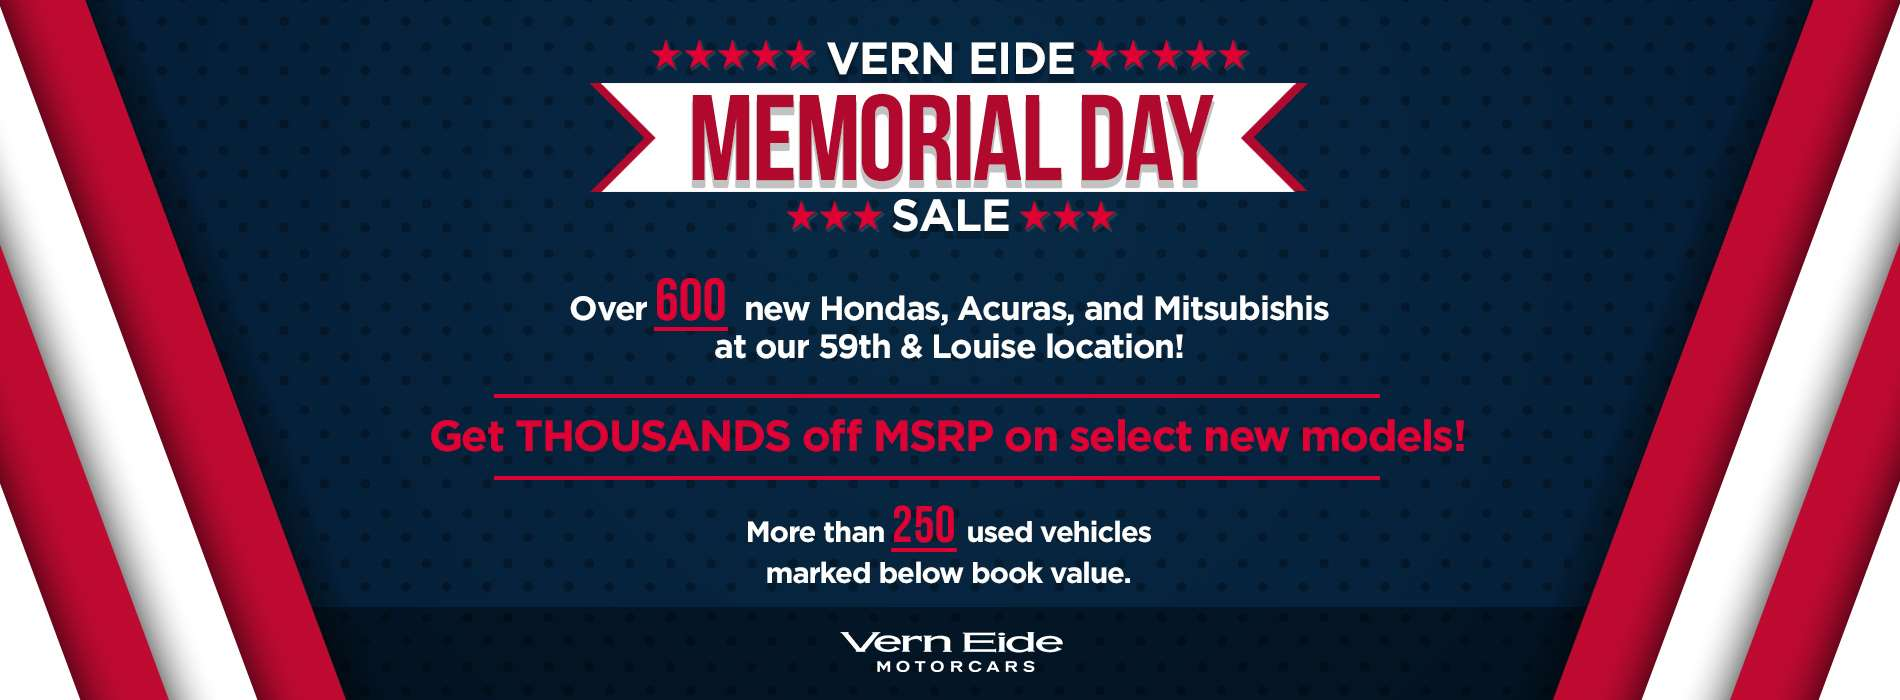 Motorcars - Memorial Day Sale - May 2019